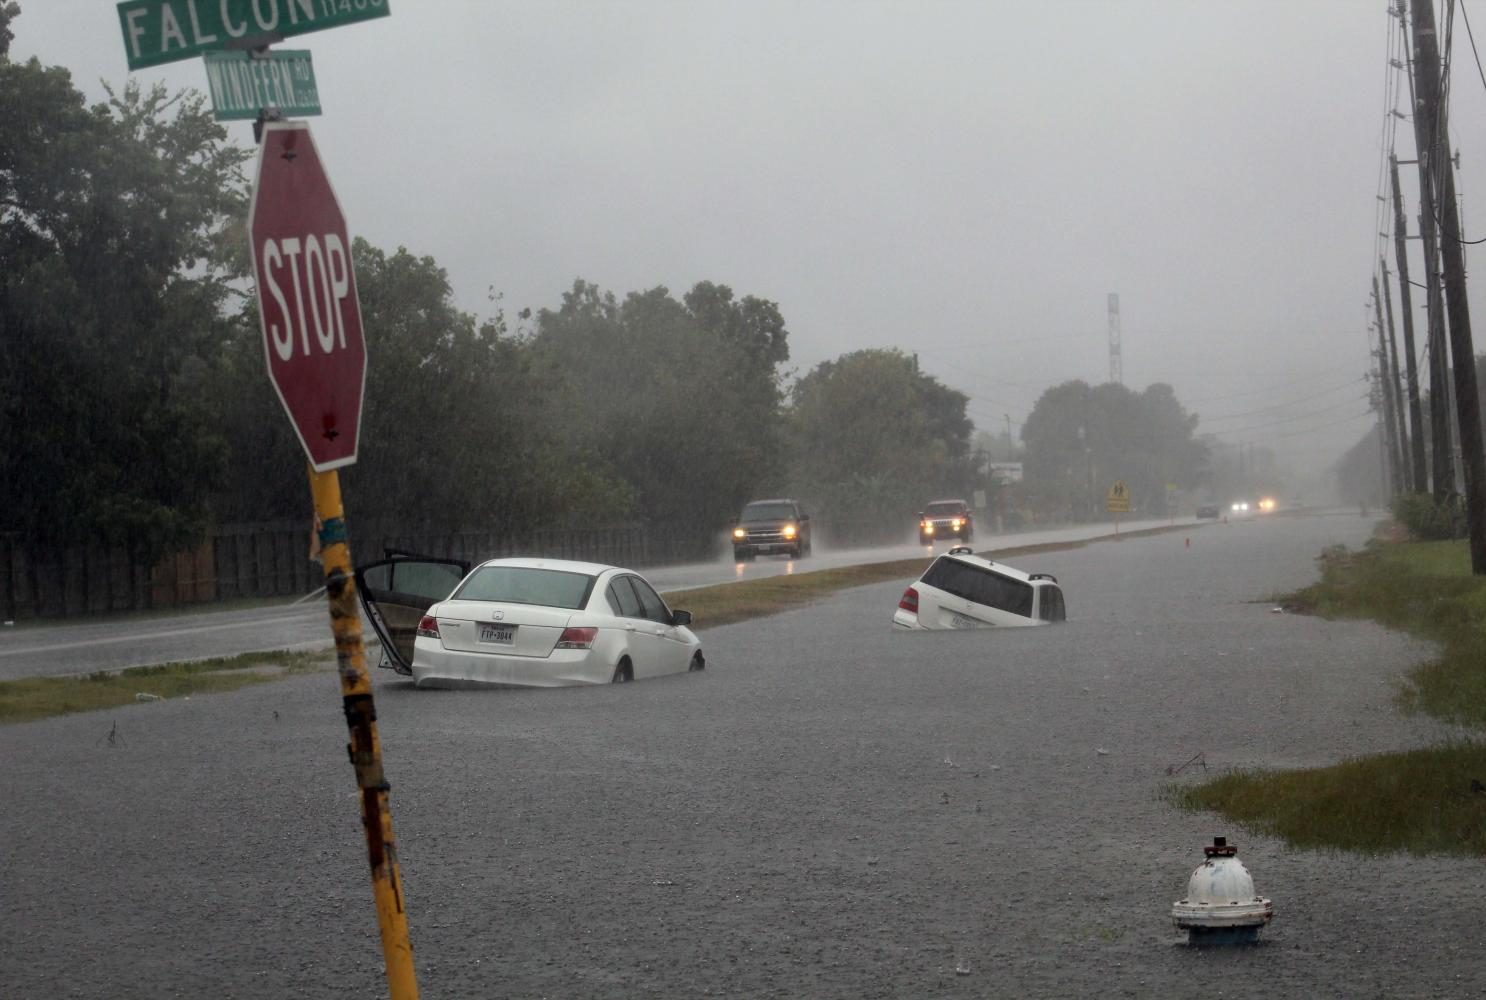 Water rises above abandoned cars on the road.